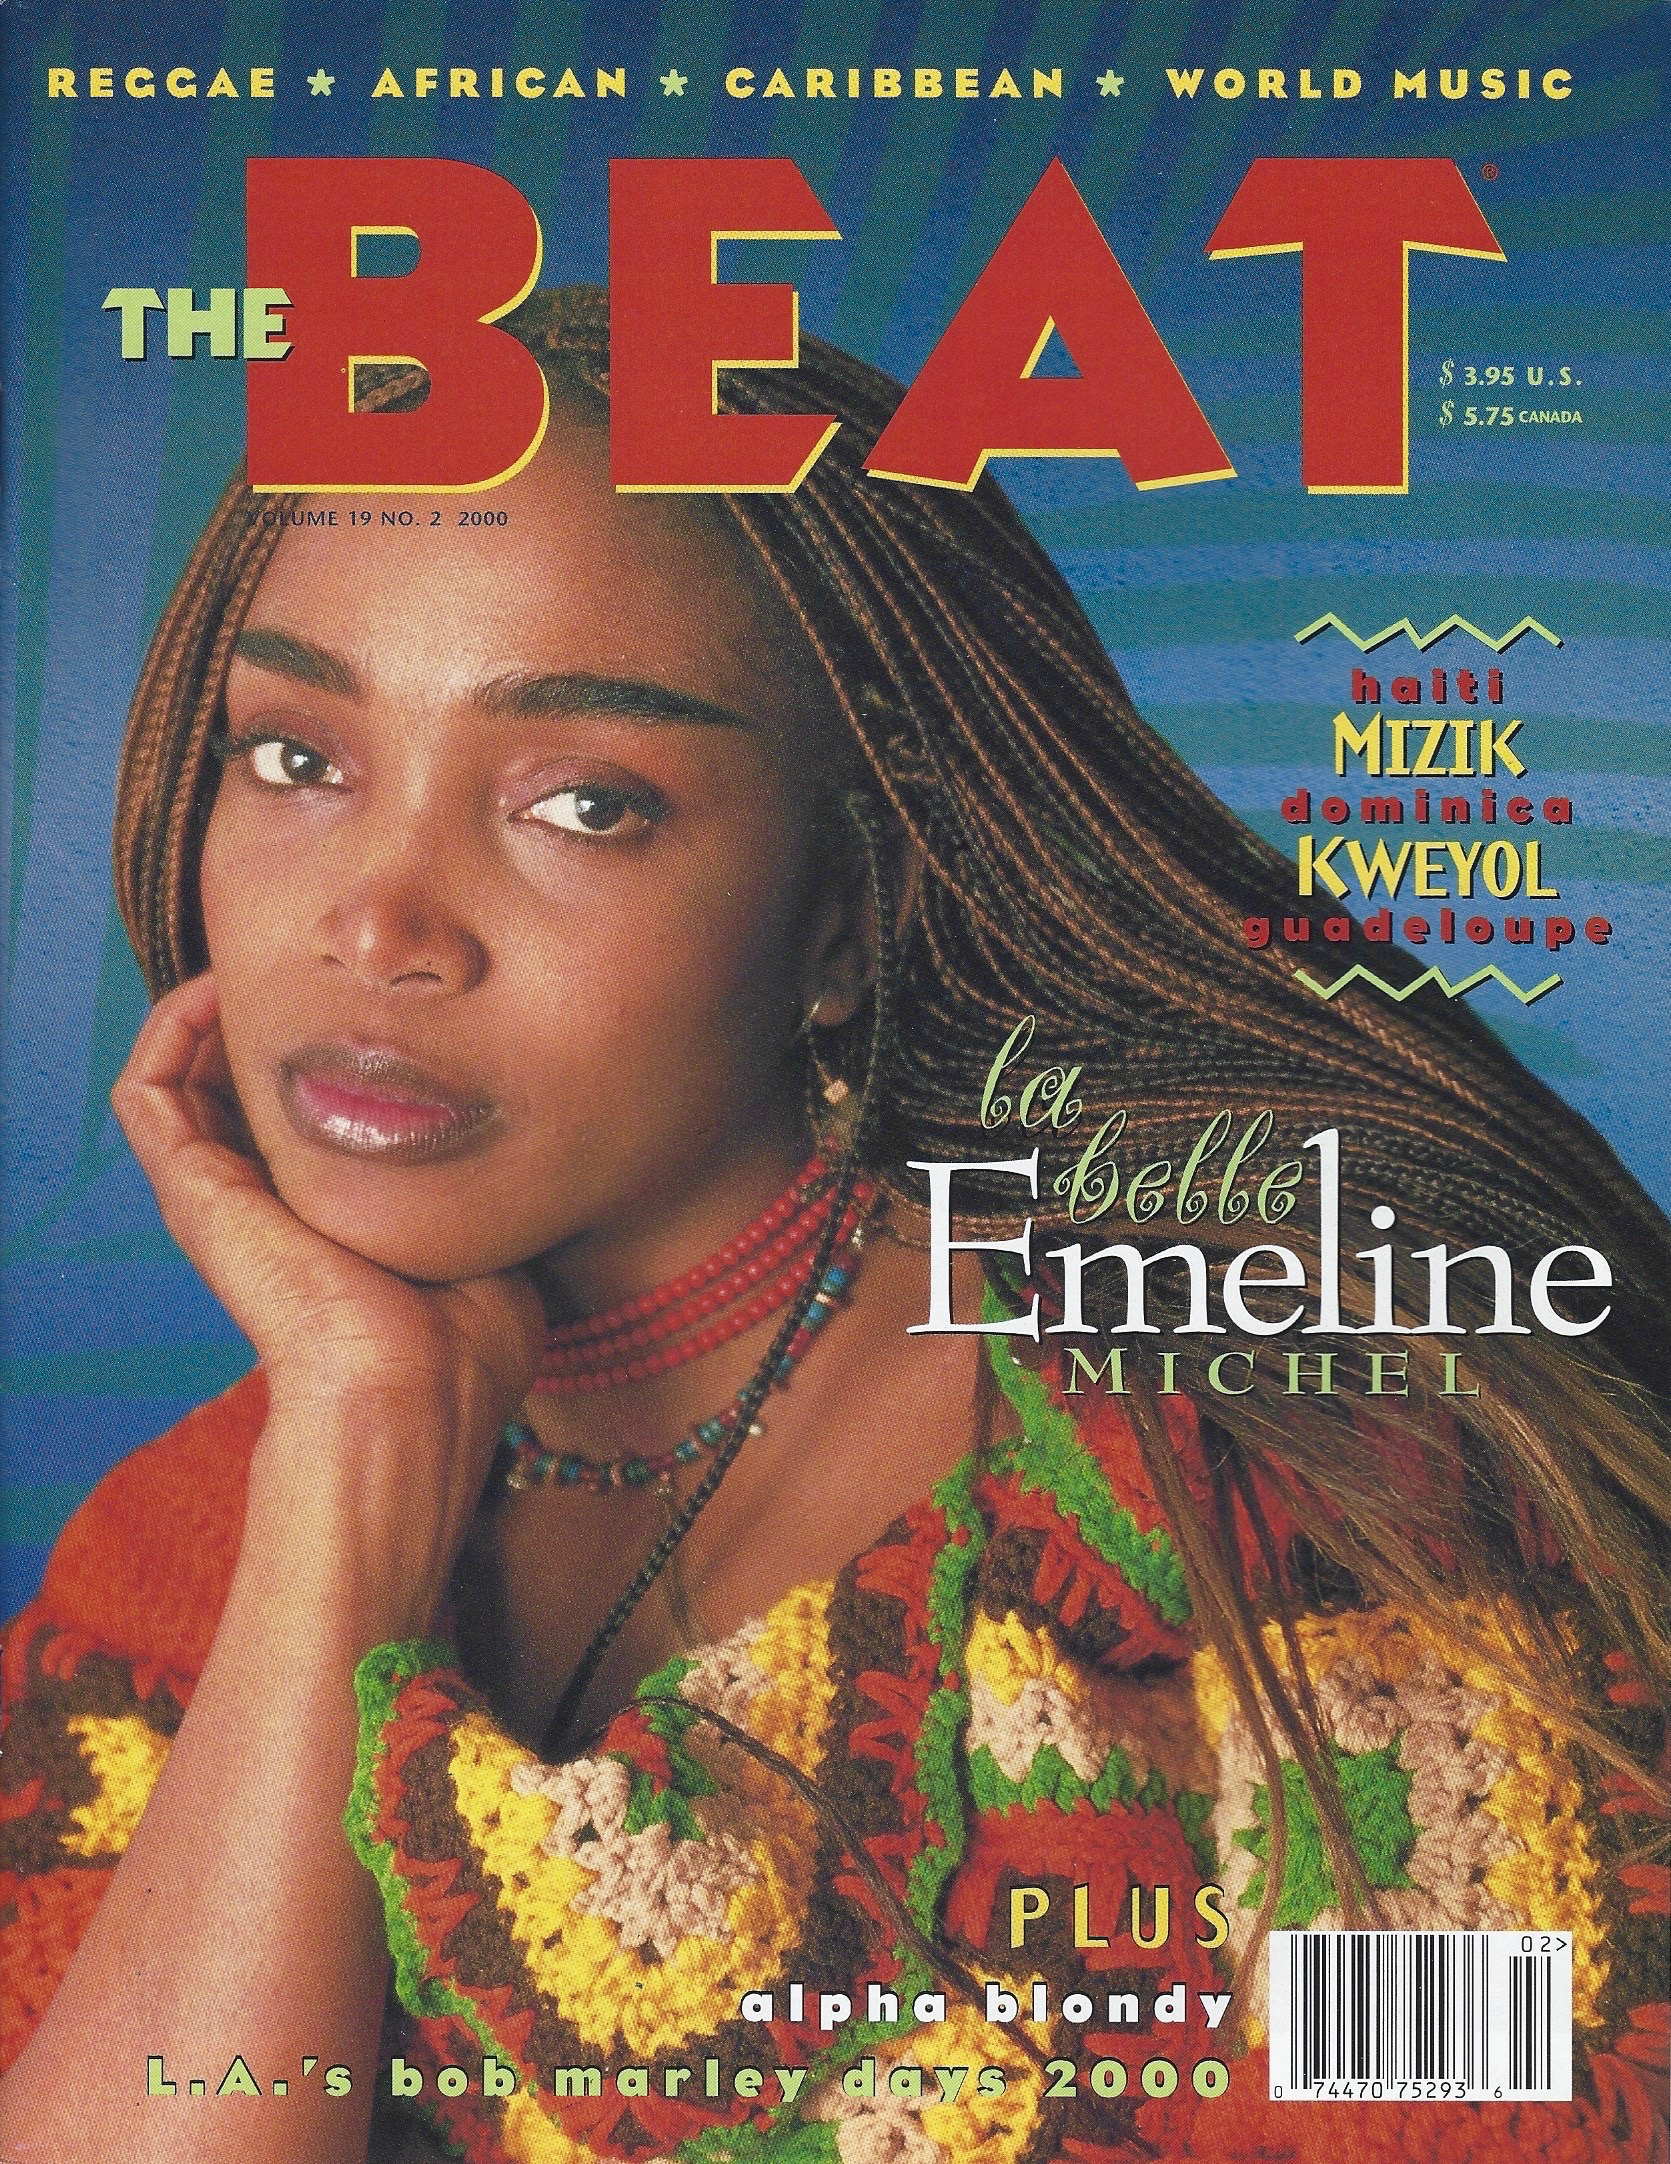 Best of The Beat on Afropop: Emeline Michel and Women Artists of Haiti